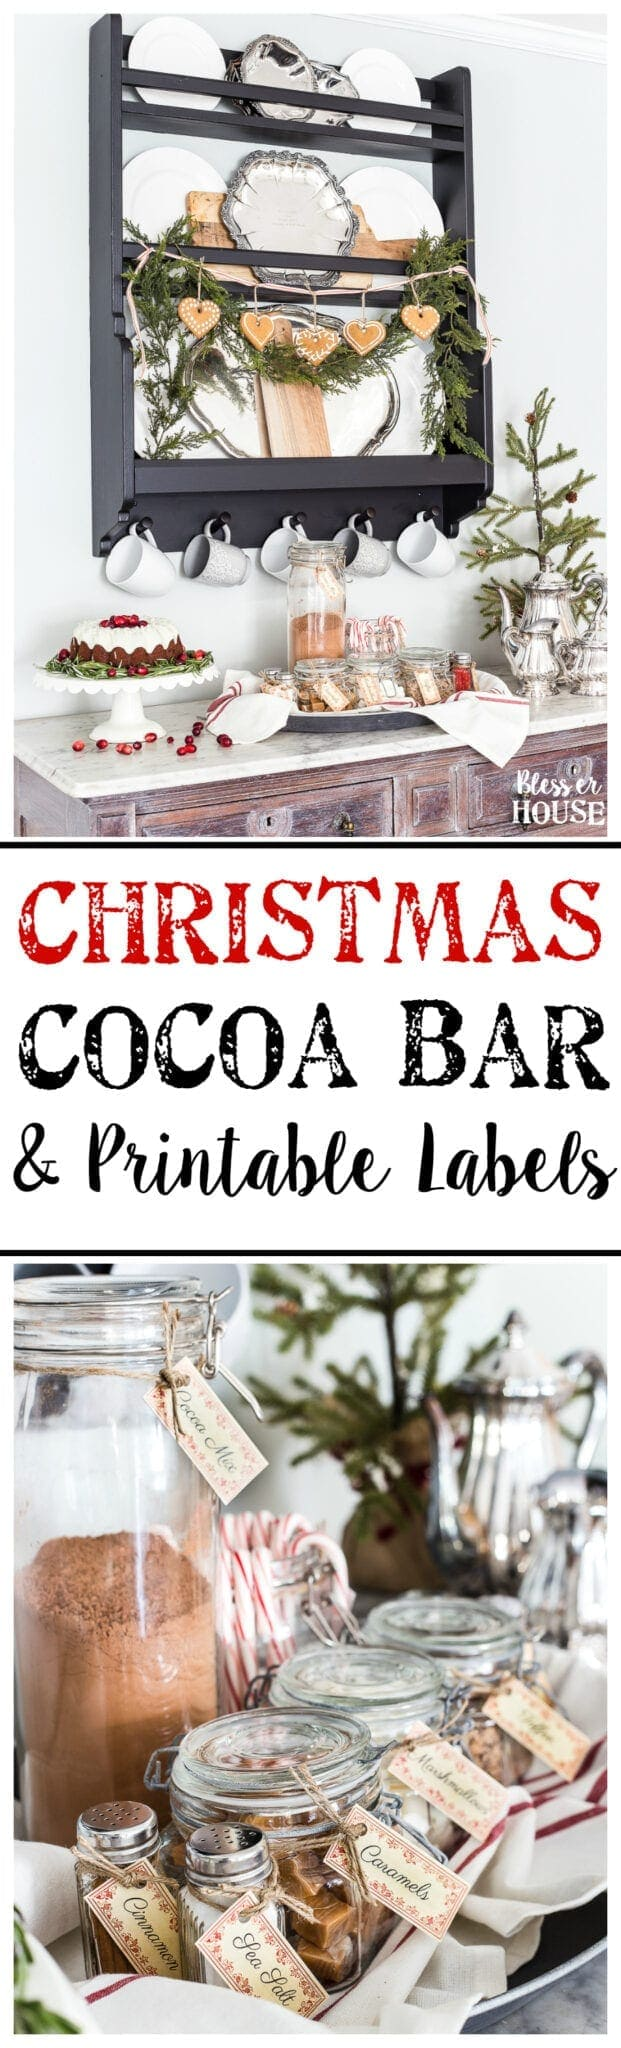 Cozy Hot Cocoa Bar And Printable Labels Blesser House